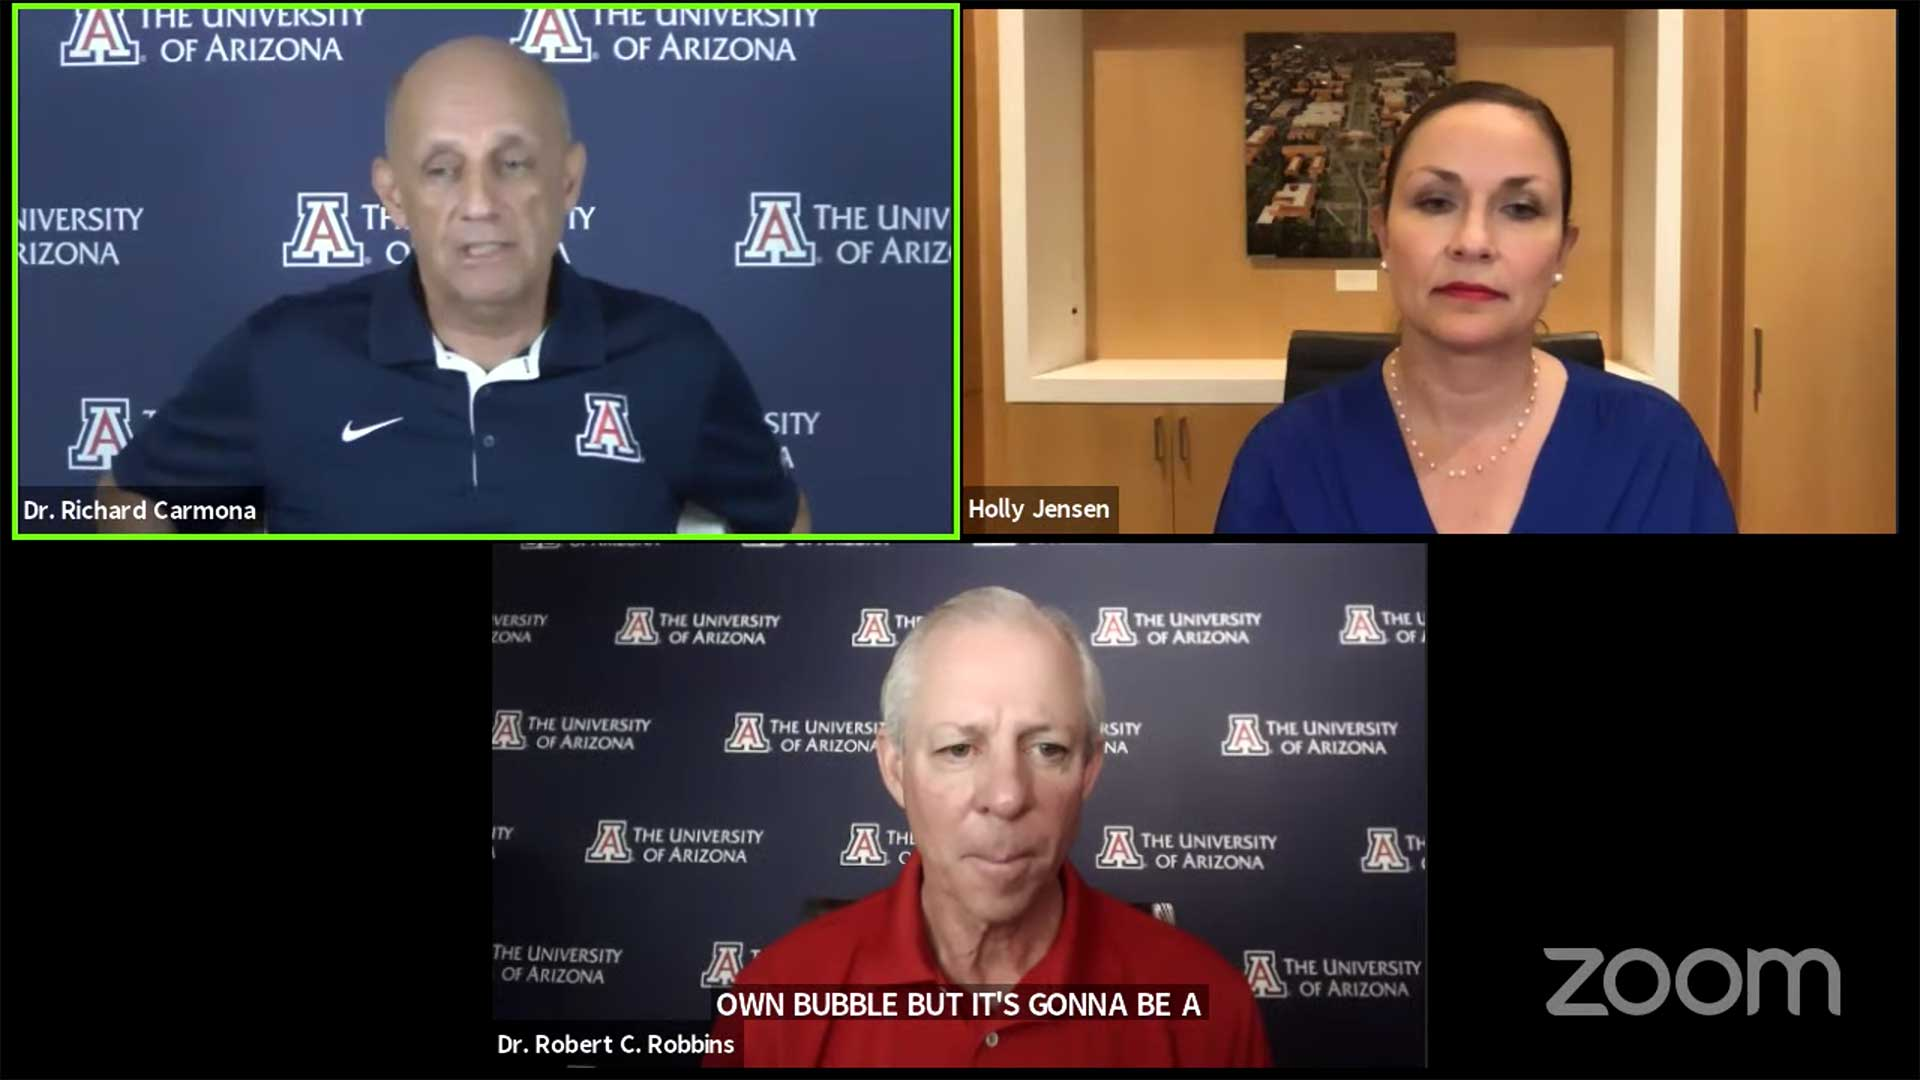 A University of Arizona briefing on plans for the fall semester, July 23.